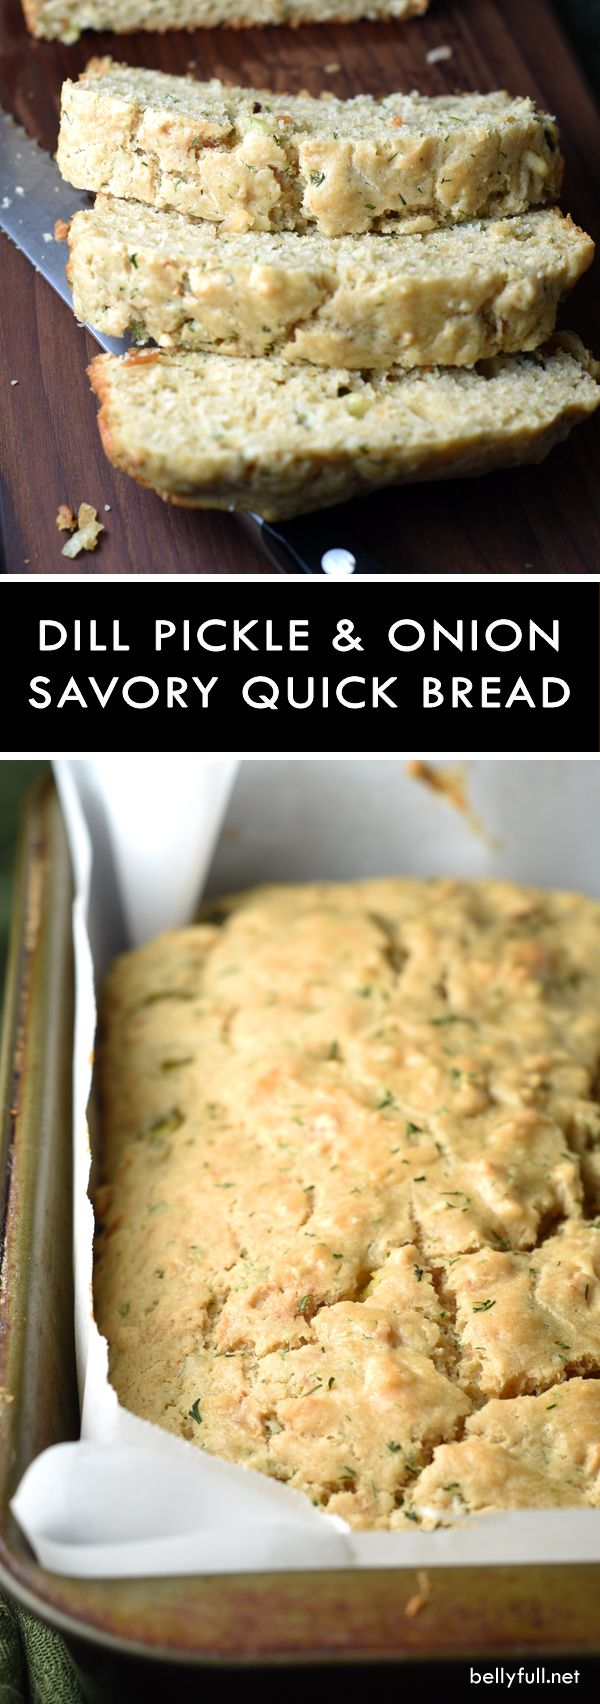 Dill Pickle Onion Quick Bread - this savory quick bread is perfectly delicious on its own, with a slab of butter, or dipped in a bowl of soup!